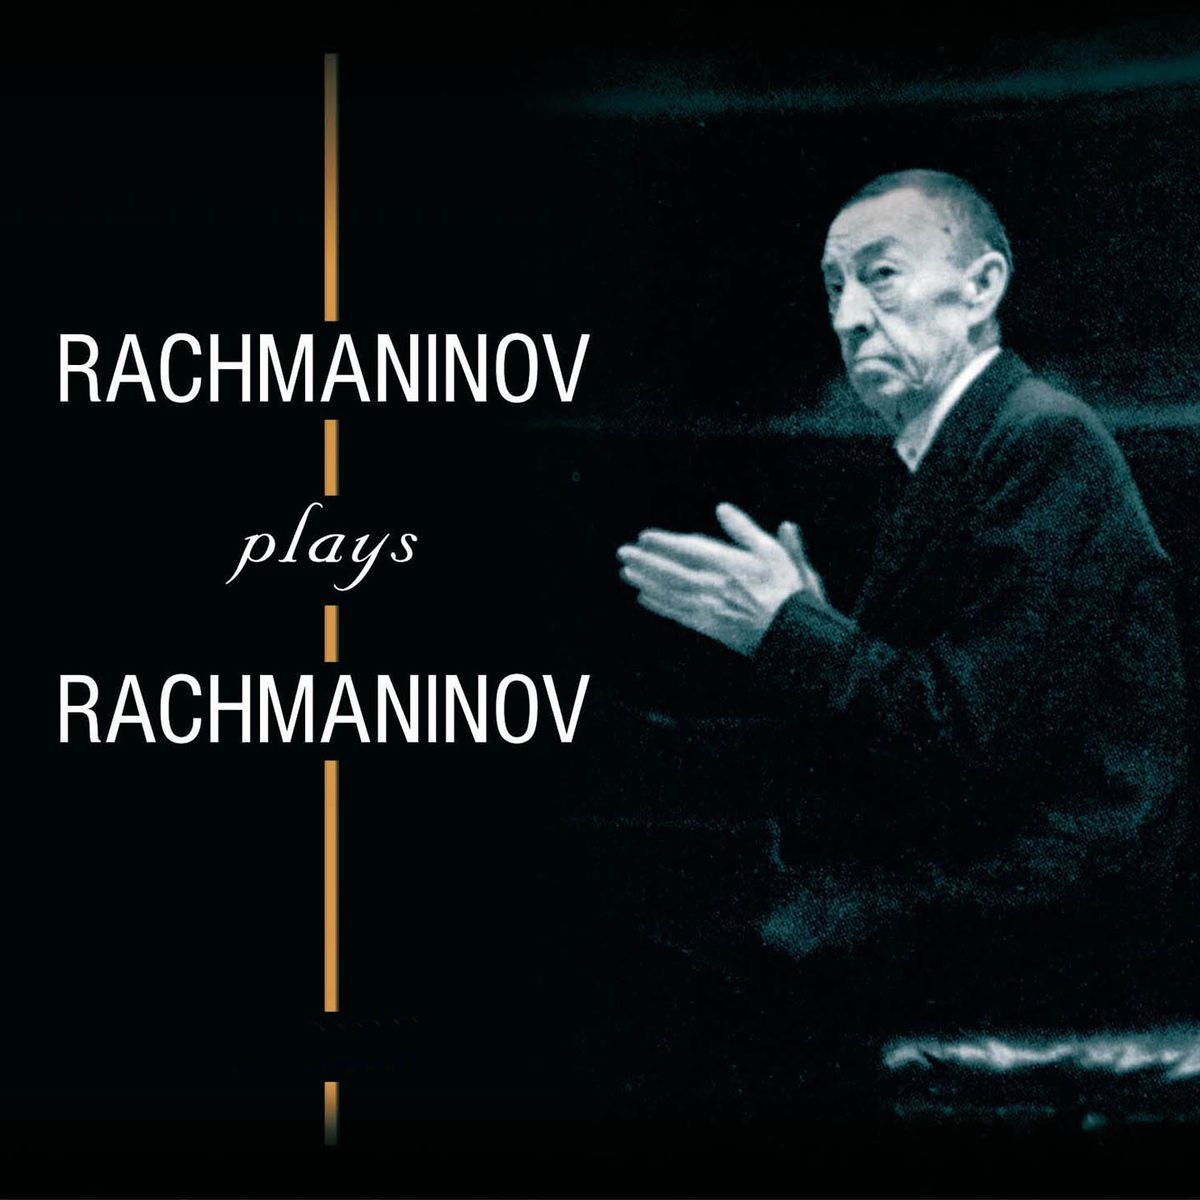 The Philadelphia Orchestra Rachmaninov, Philadelphia Orchestra / Ormandy. Rachmaninov plays Rachmaninov - complete piano concertos (2 CD) юджин орманди леопольд стоковский the philadelphia orchestra сергей рахманинов rachmaninoff plays rachmaninoff the four piano concertos 2 cd